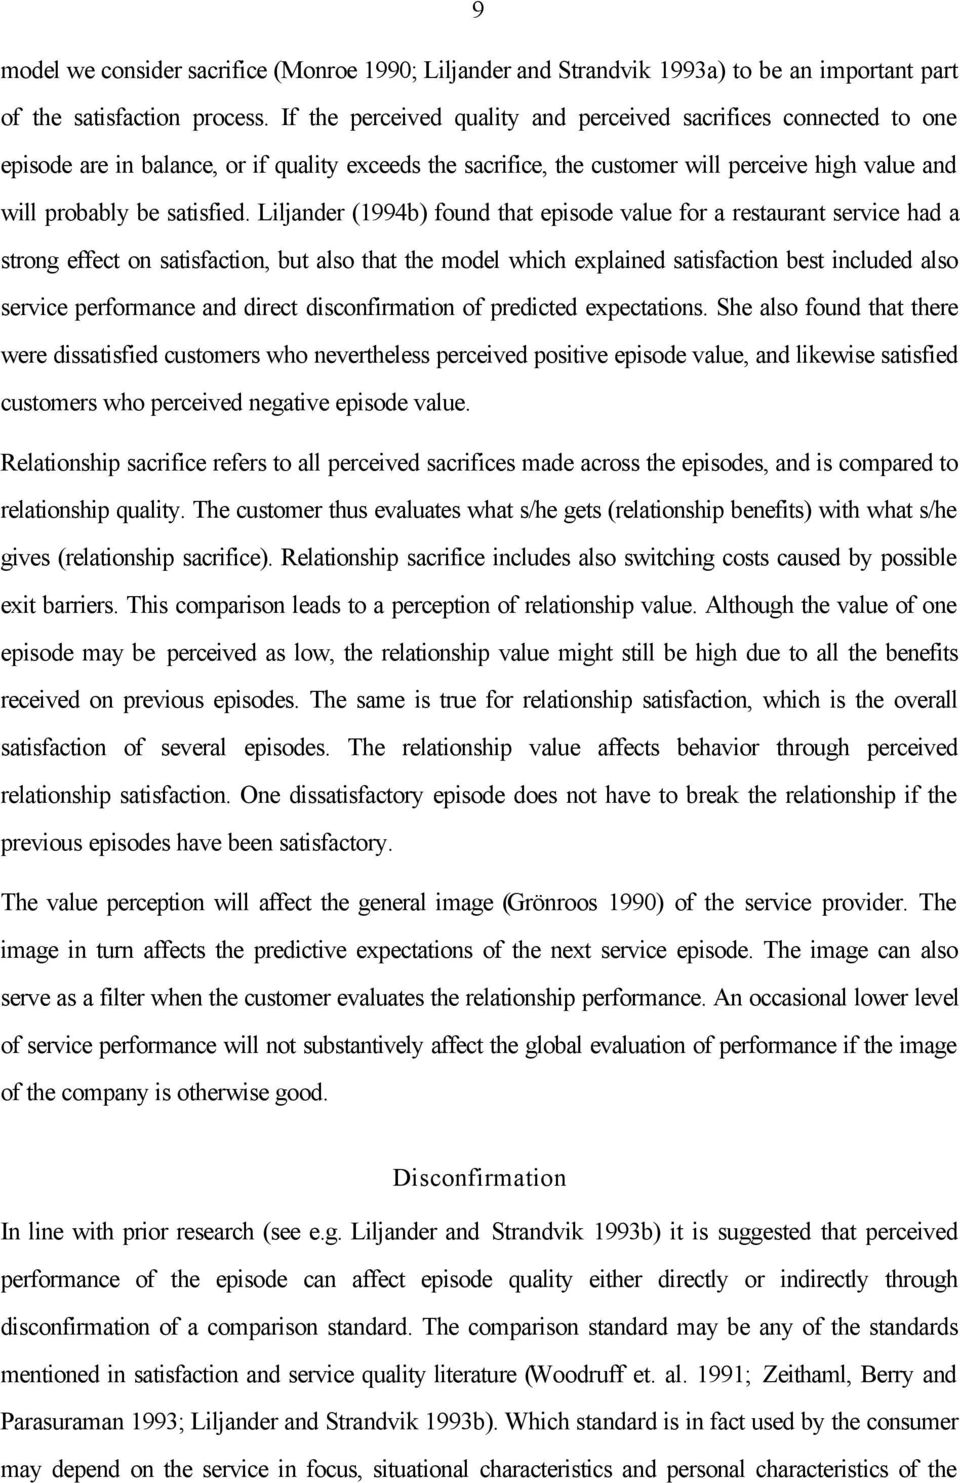 Liljander (1994b) found that episode value for a restaurant service had a strong effect on satisfaction, but also that the model which explained satisfaction best included also service performance